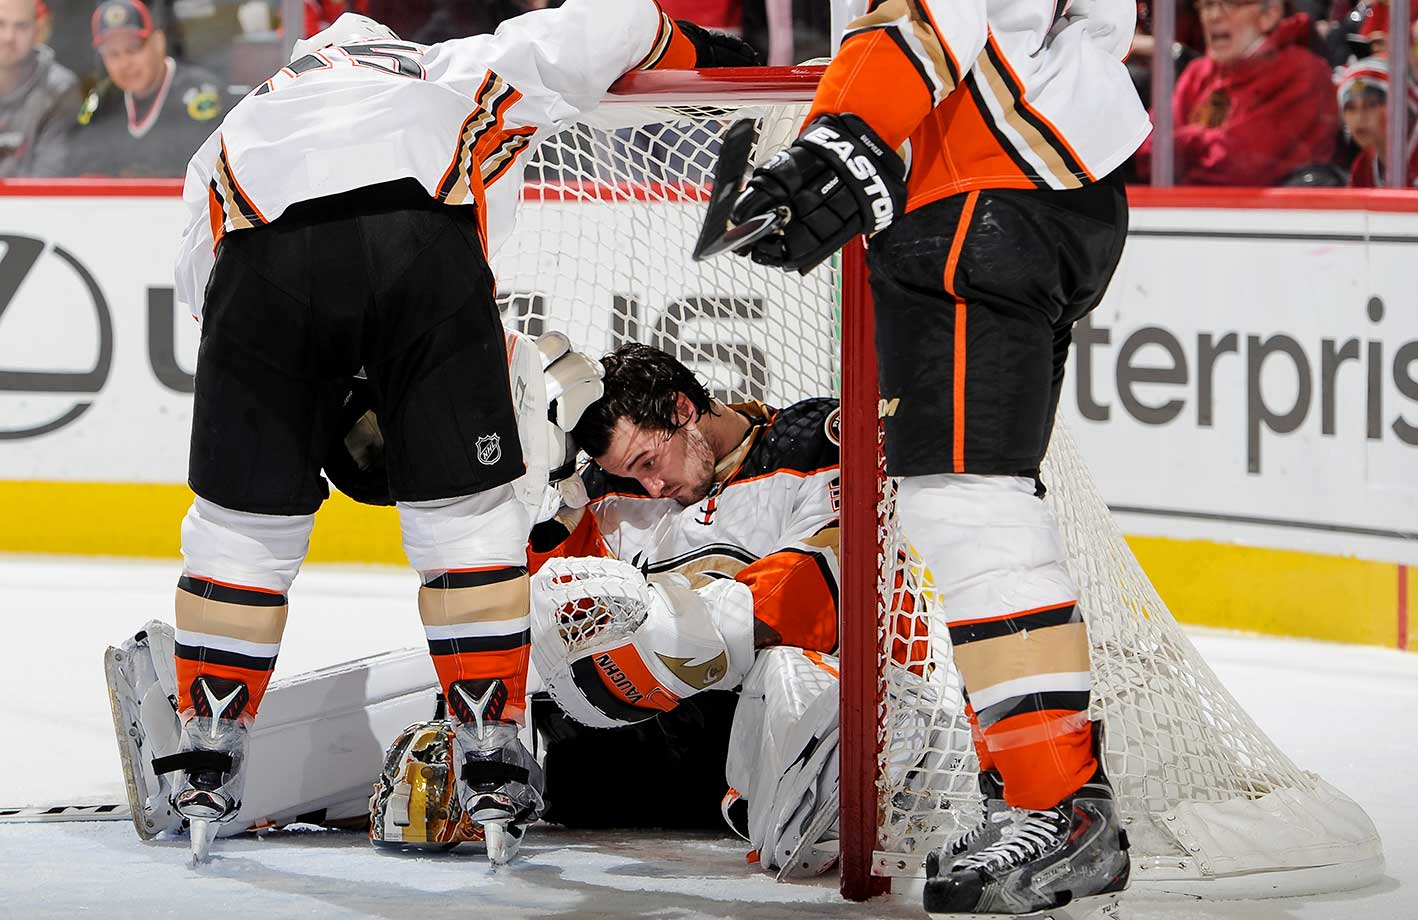 Goalie John Gibsonof the Anaheim Ducks sits in the net after taking a hit from the Chicago Blackhawks.